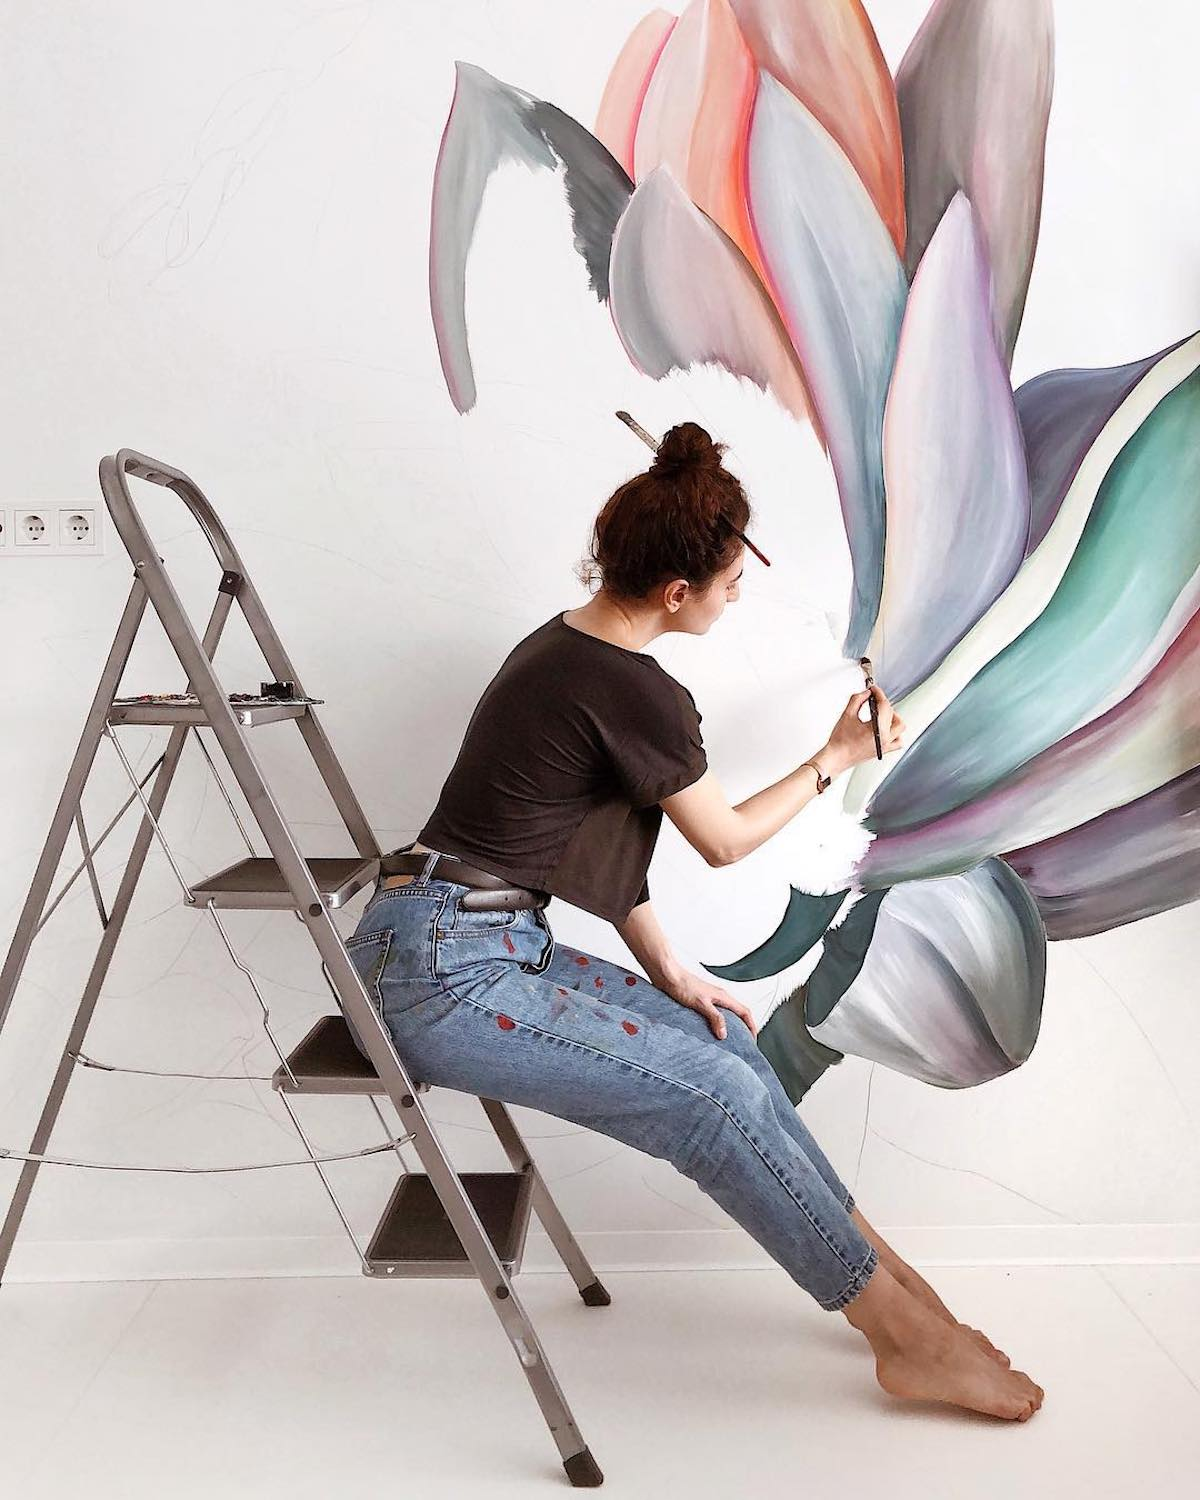 Wall Mural Art by Lilit Sargsyan